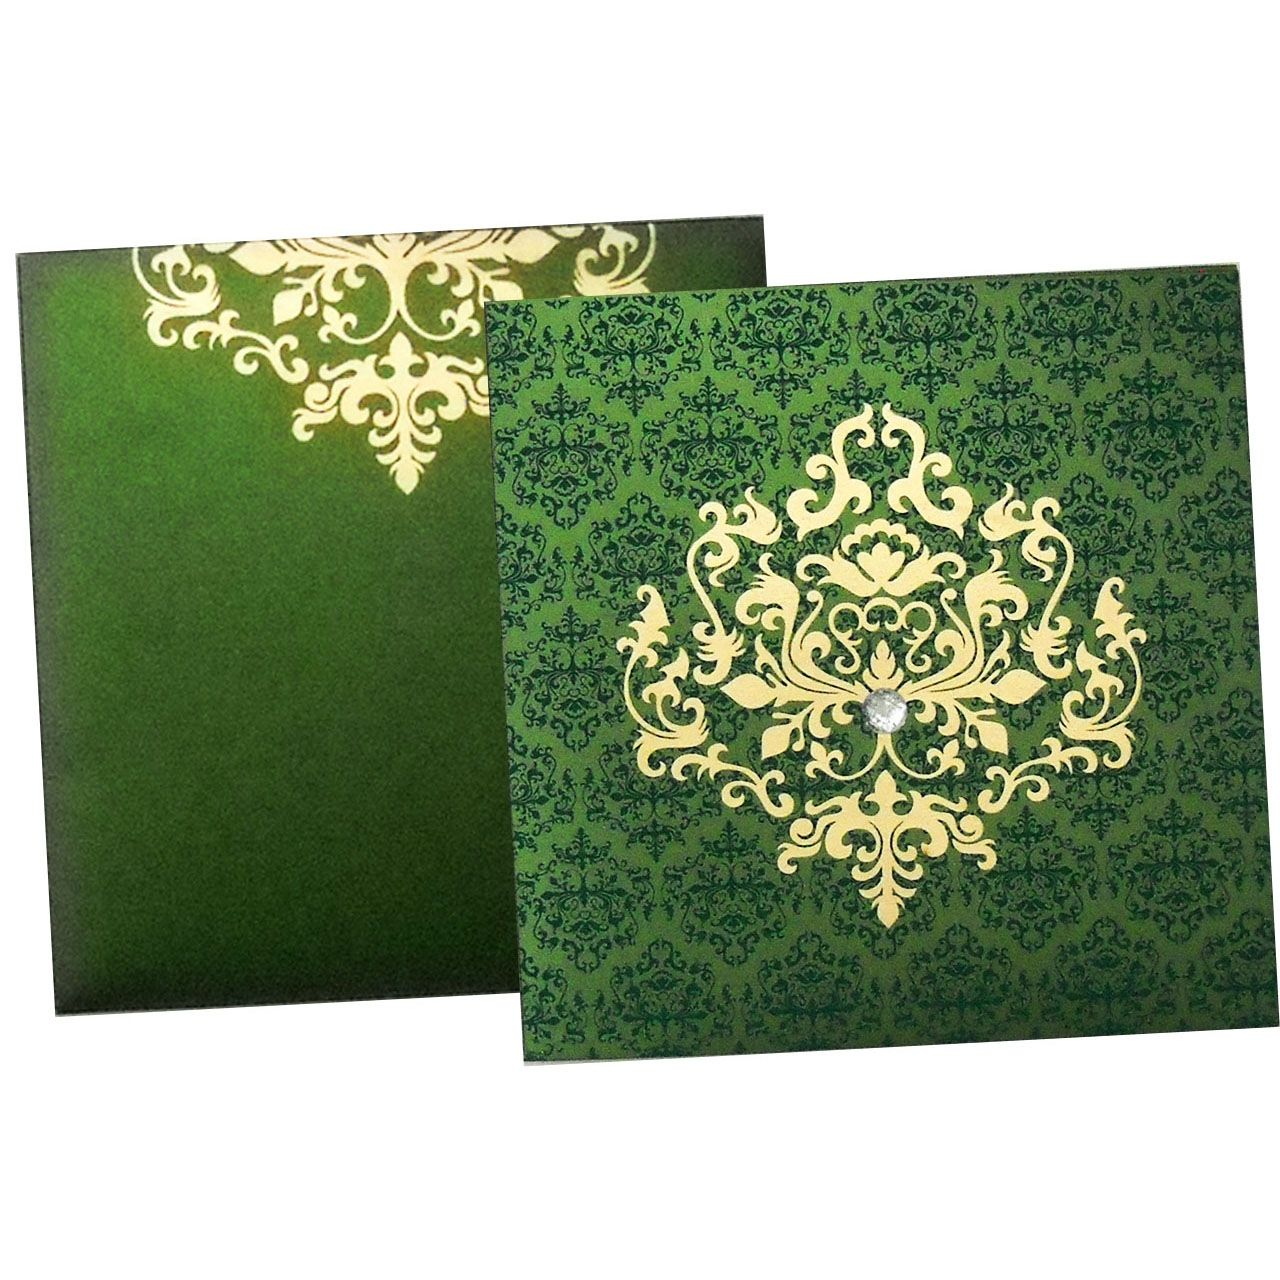 muslim wedding card with raised gold color printing on shimmery